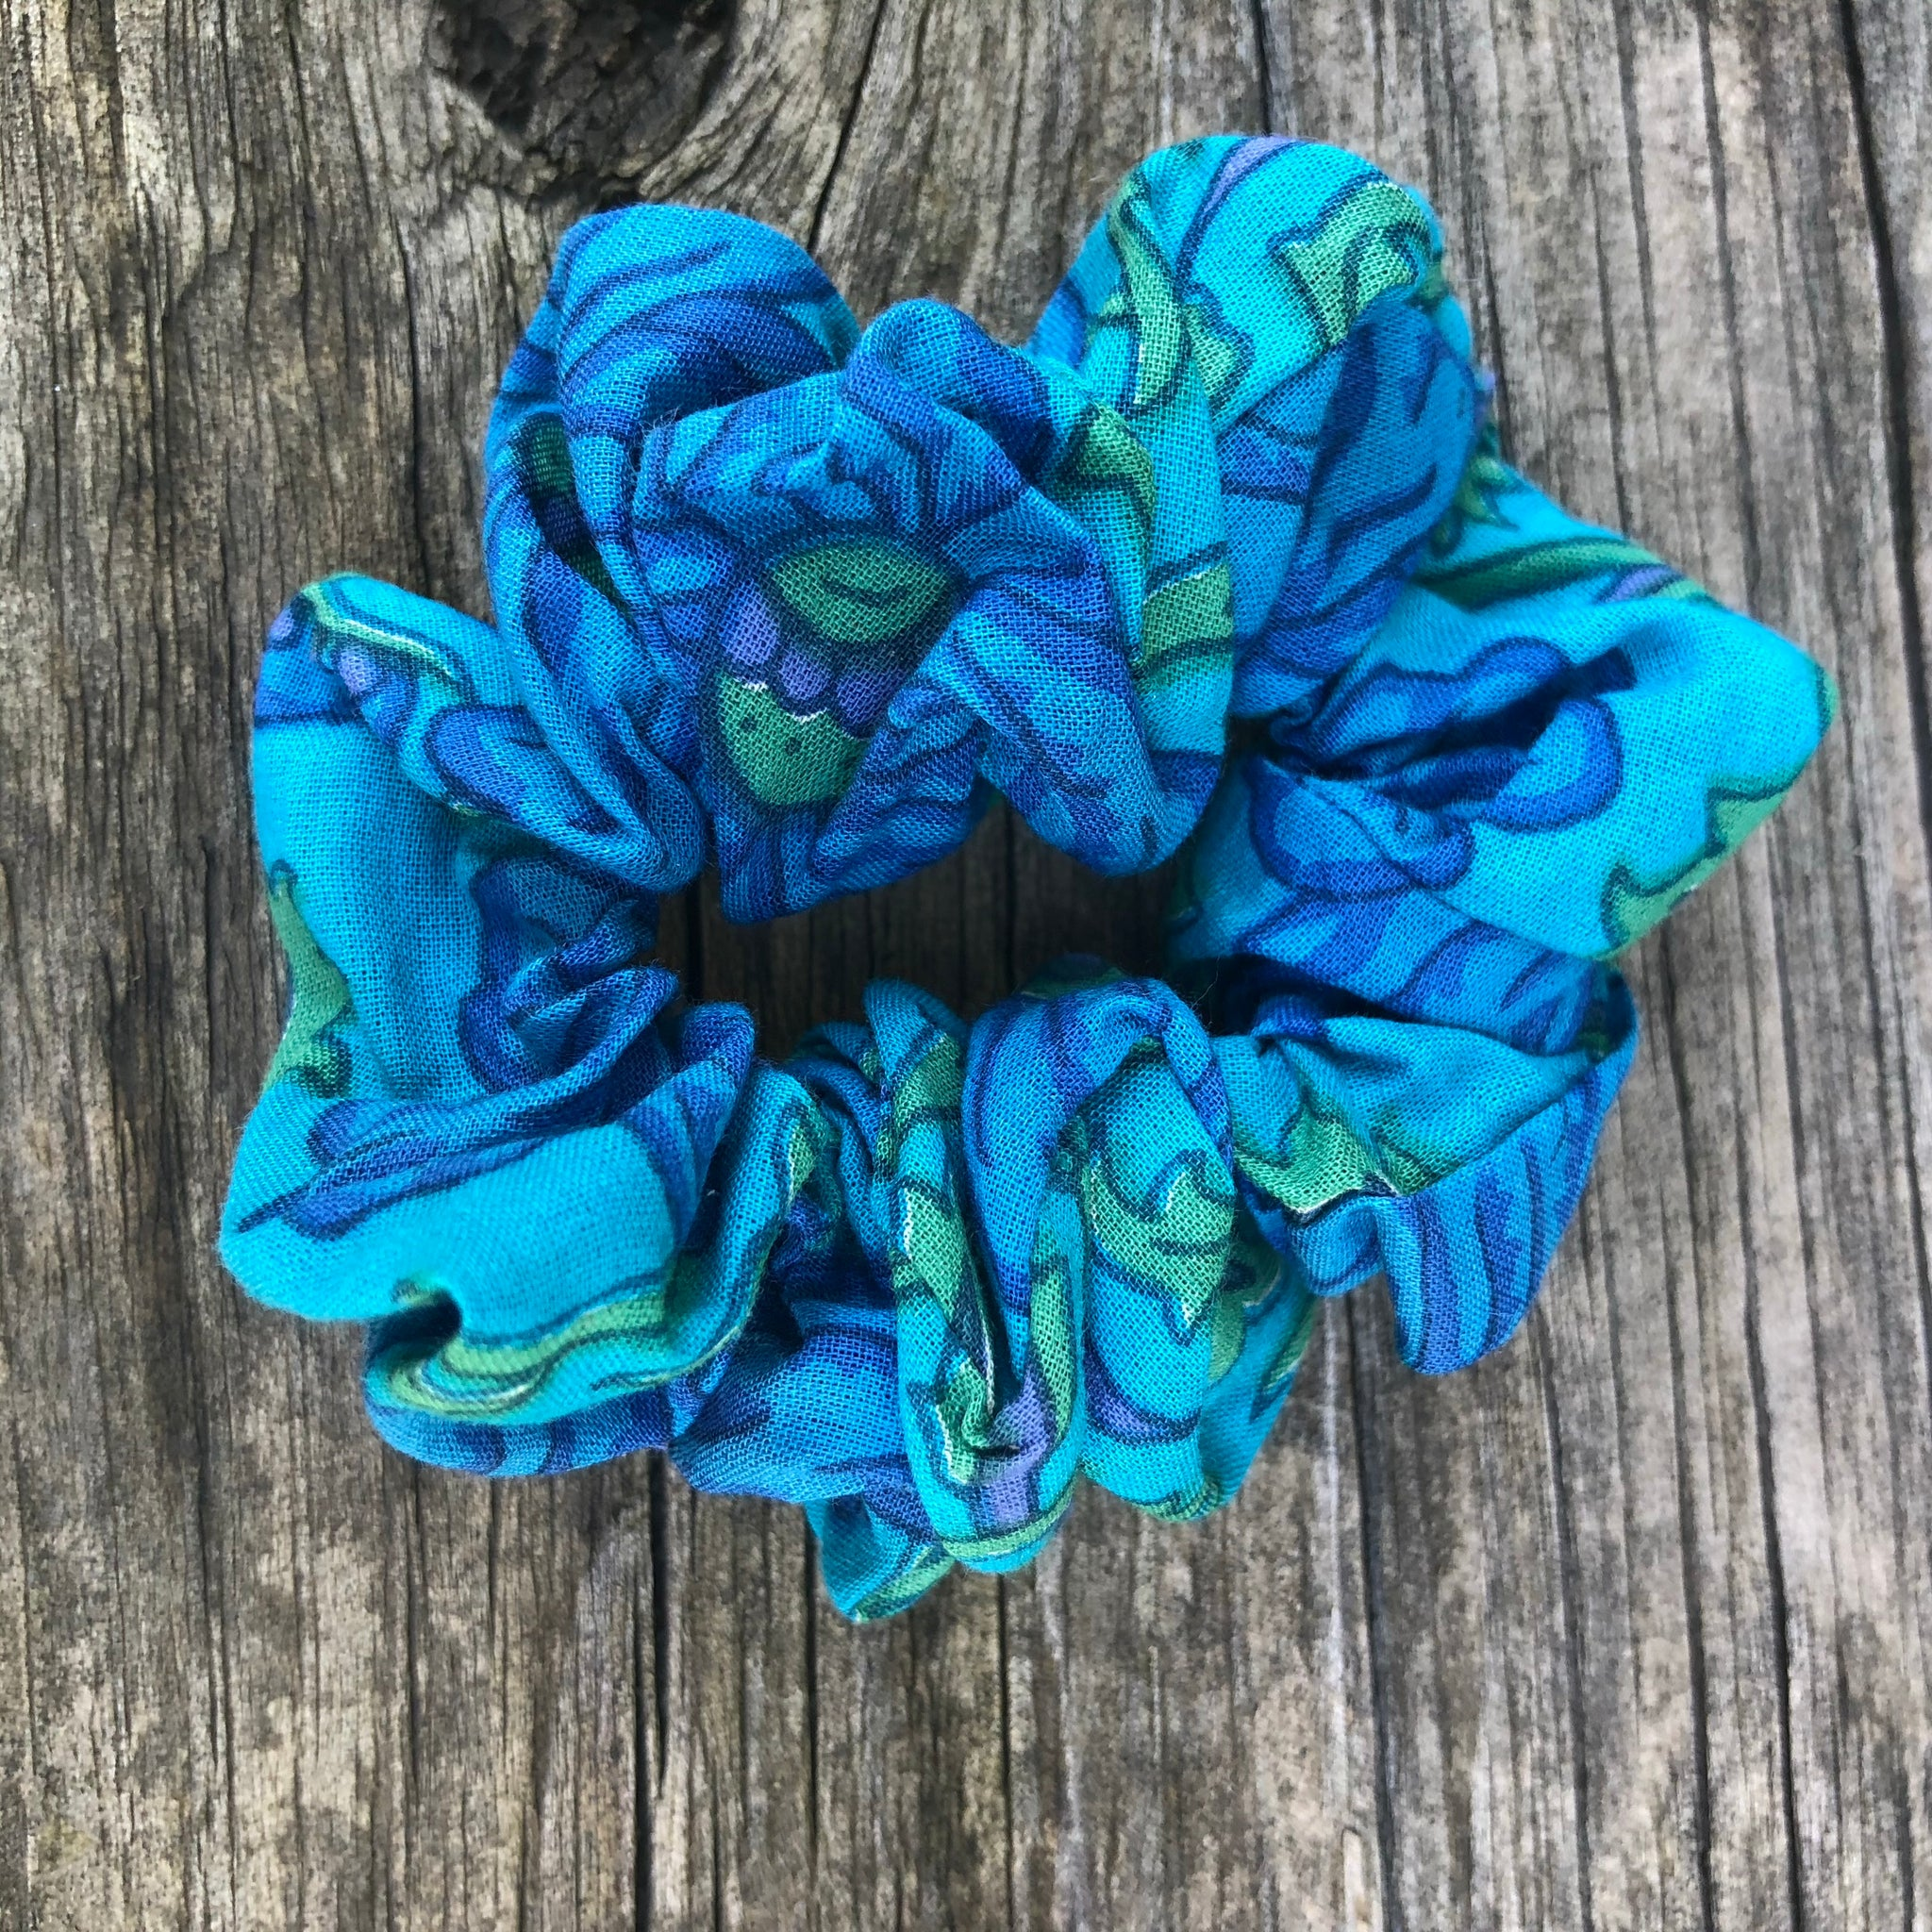 Fair Trade Ethical Scrunchies Turquoise Fabric Designs